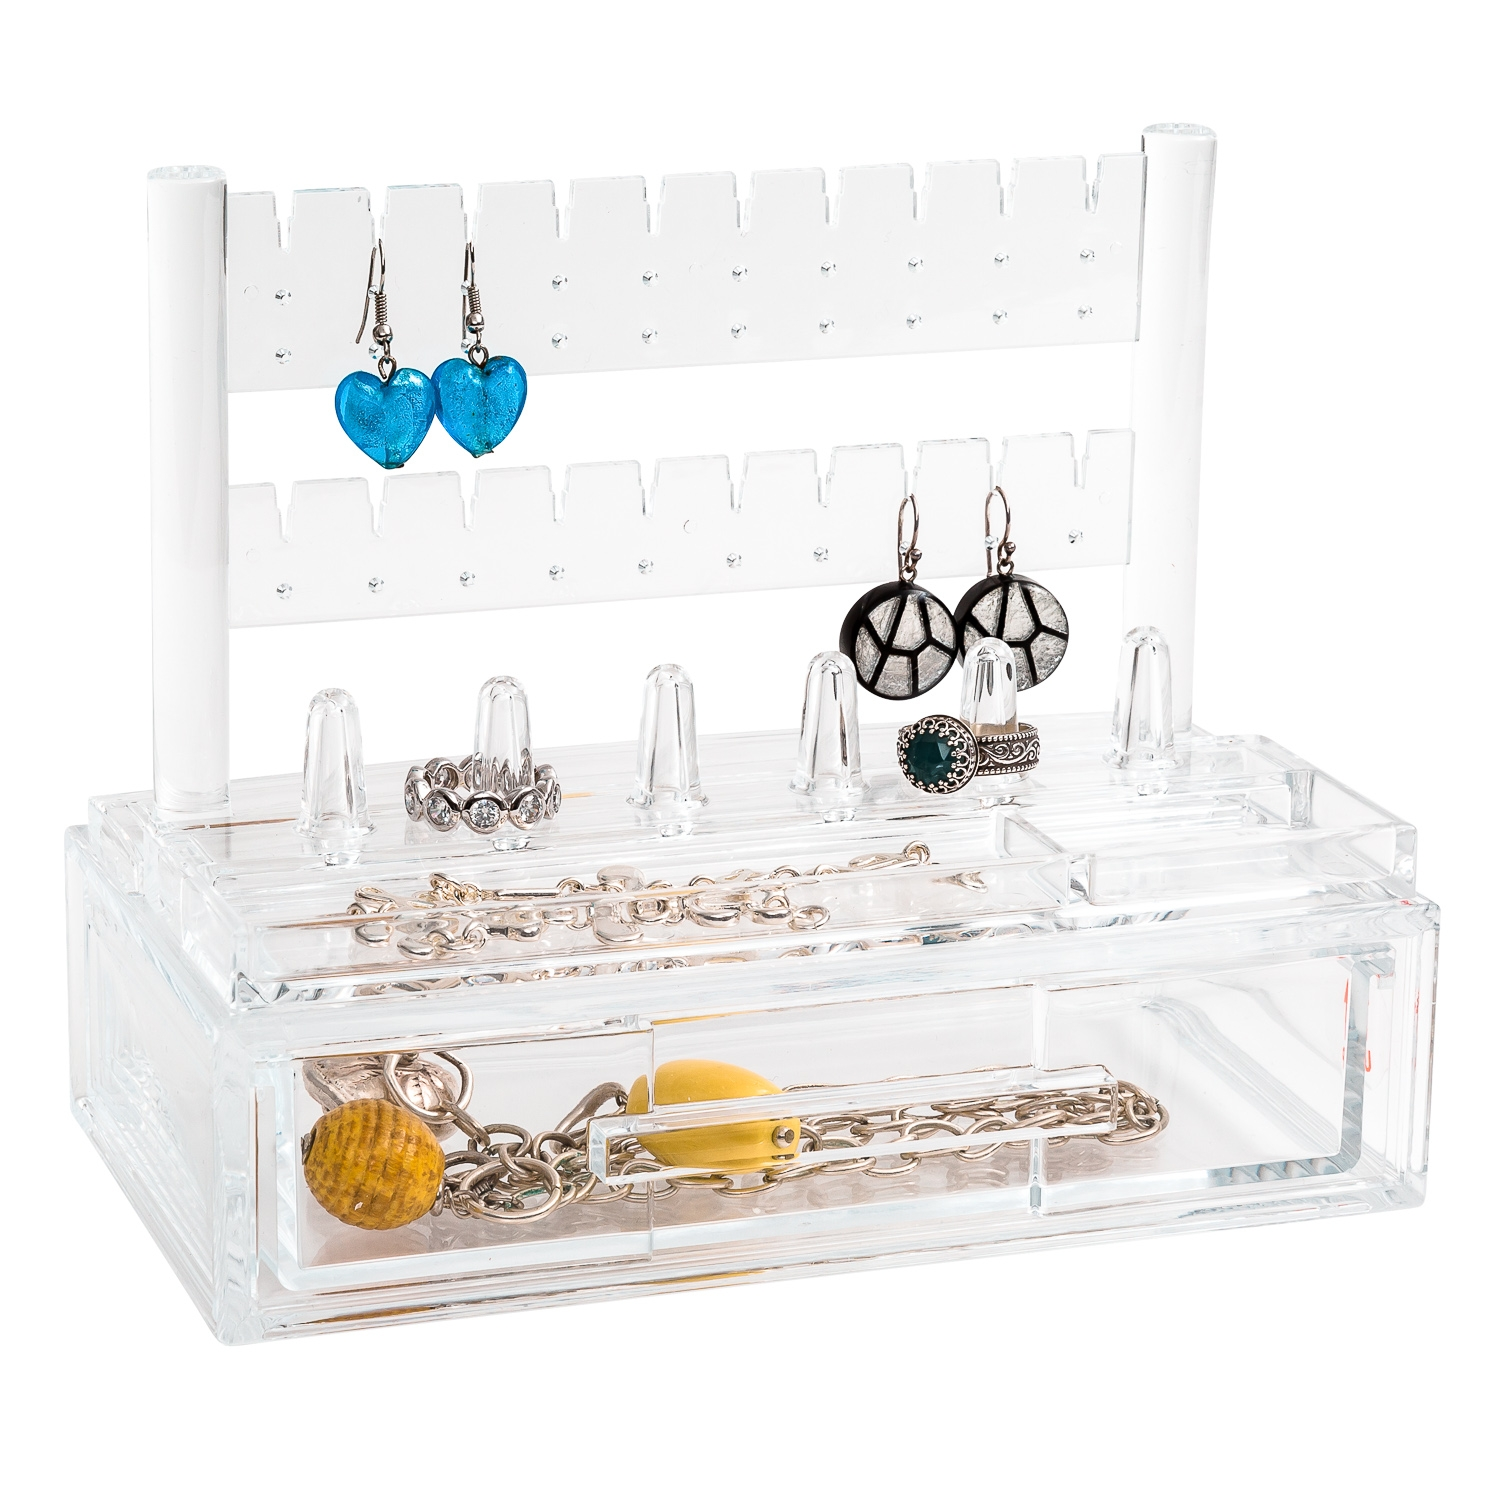 Jewellery Organiser With Drawer From Storage Box